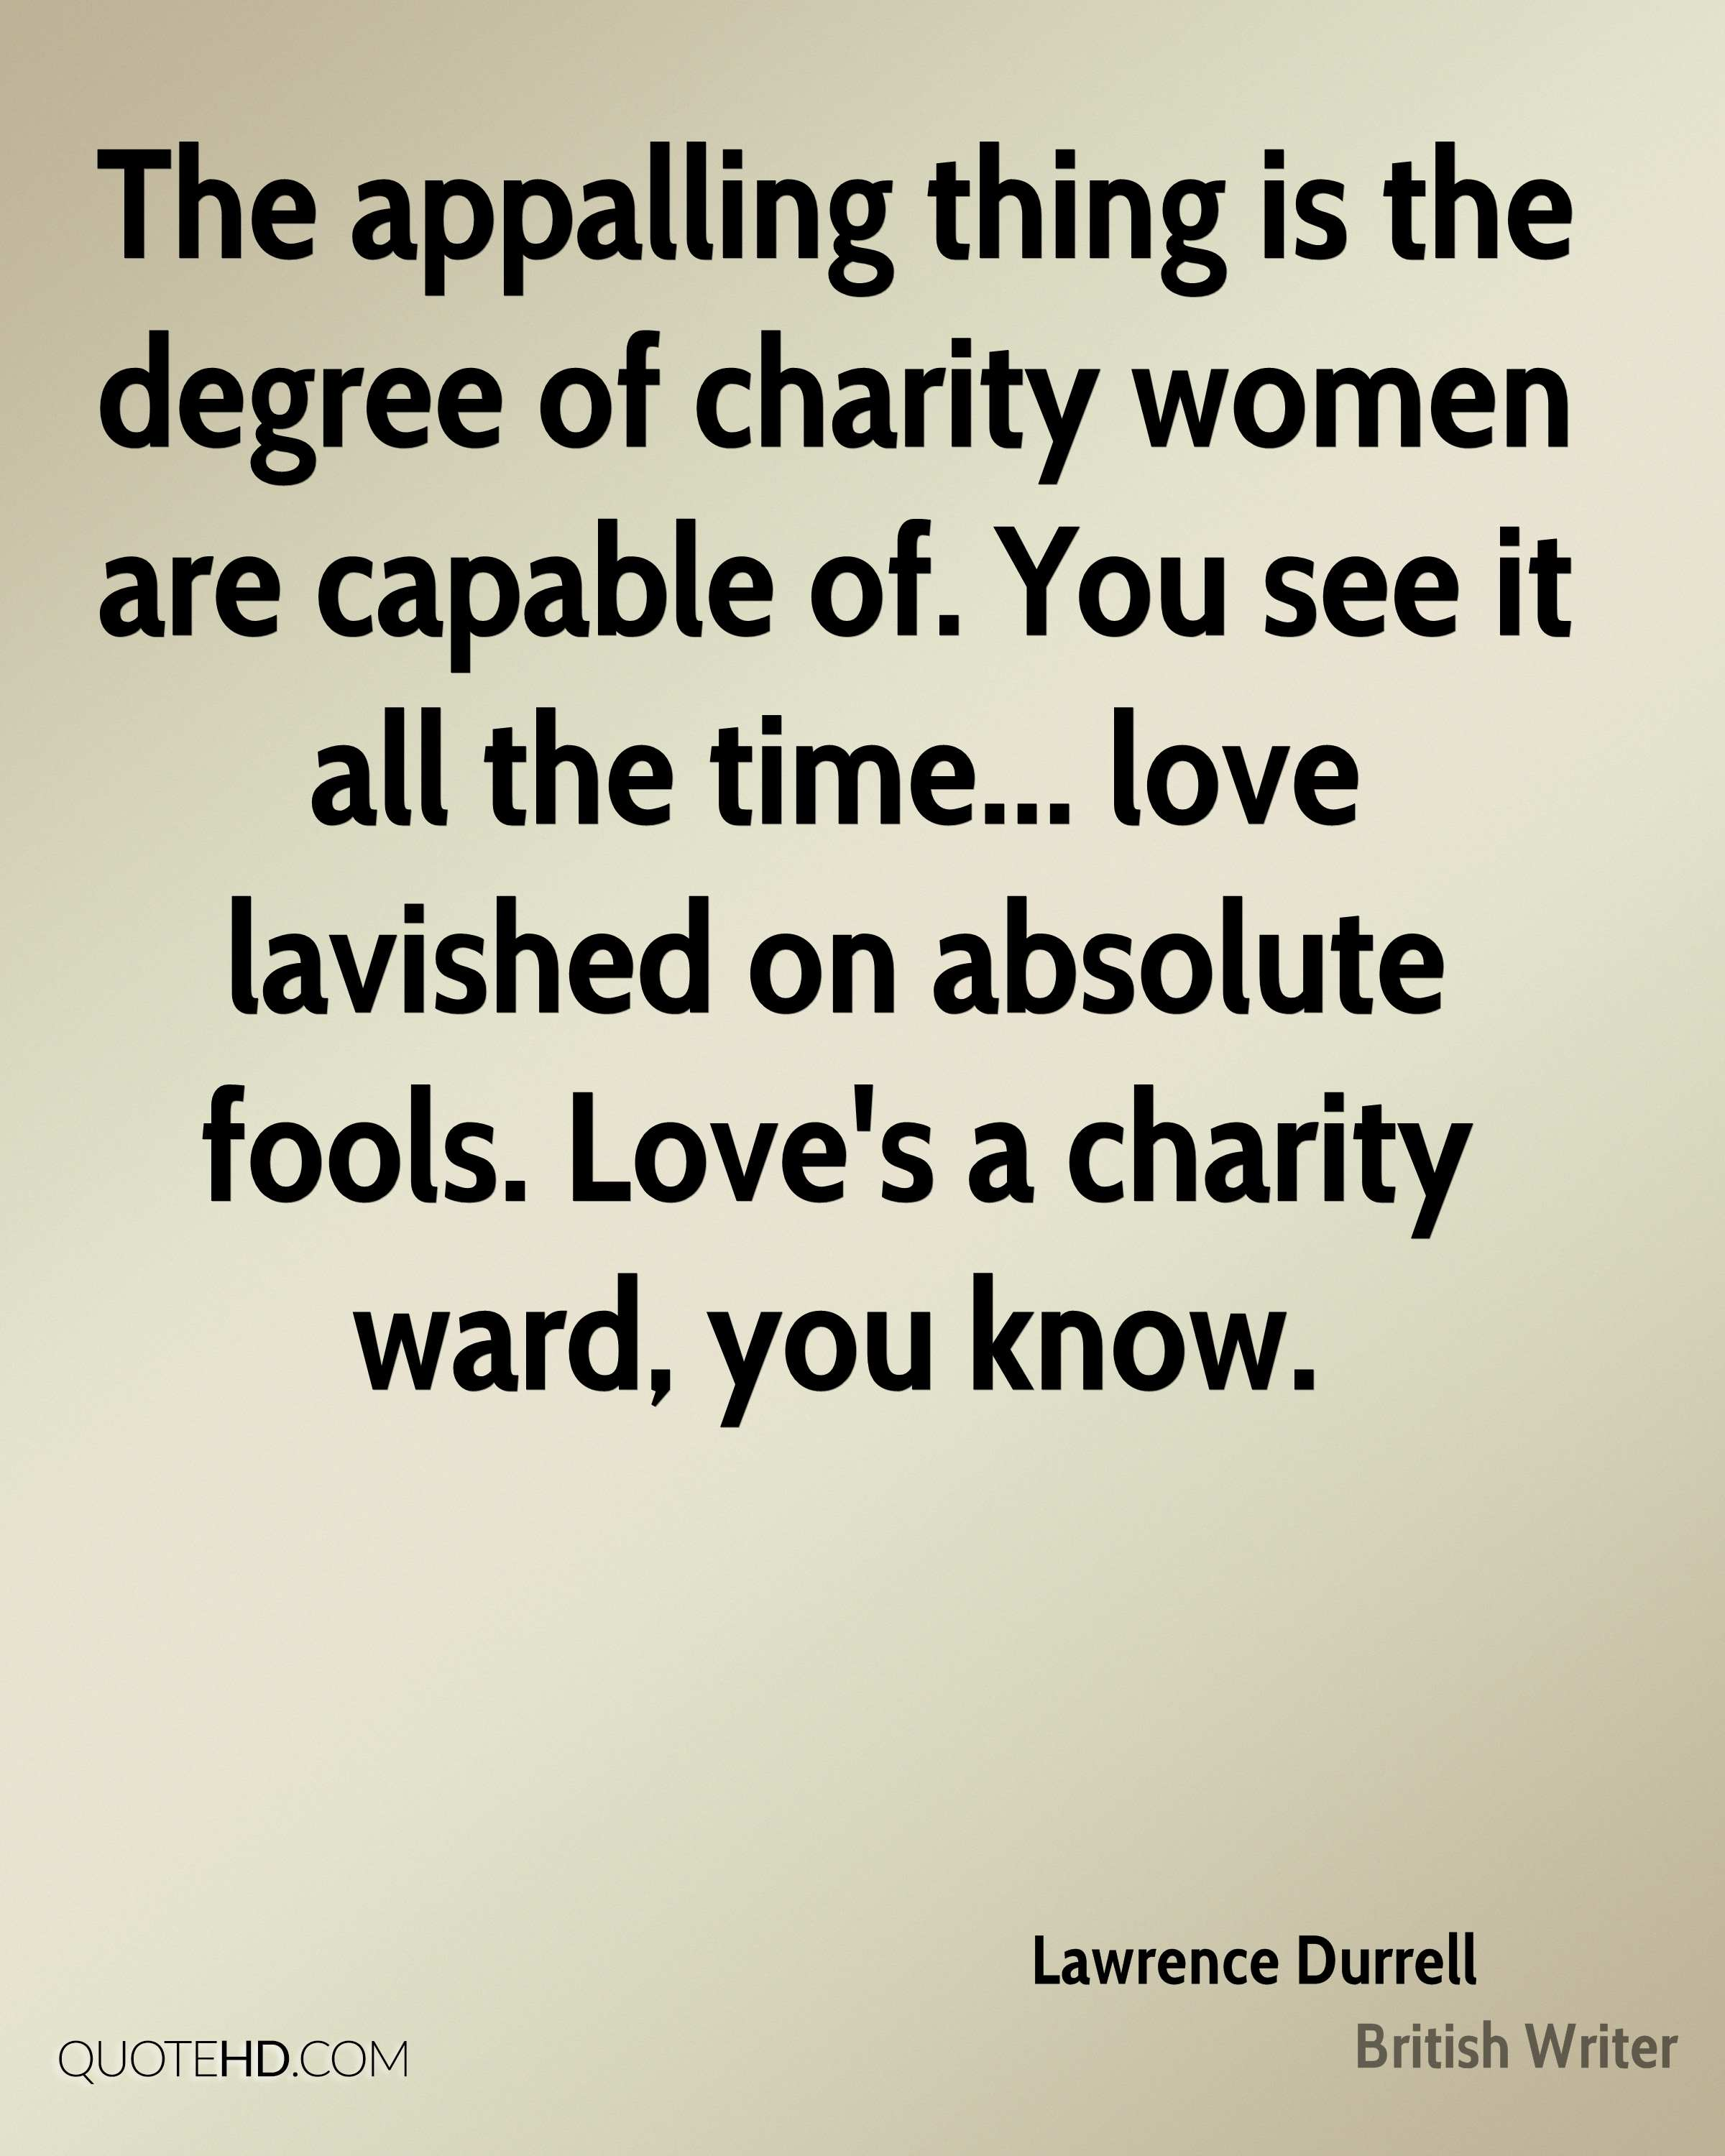 The appalling thing is the degree of charity women are capable of. You see it all the time... love lavished on absolute fools. Love's a charity ward, you know.